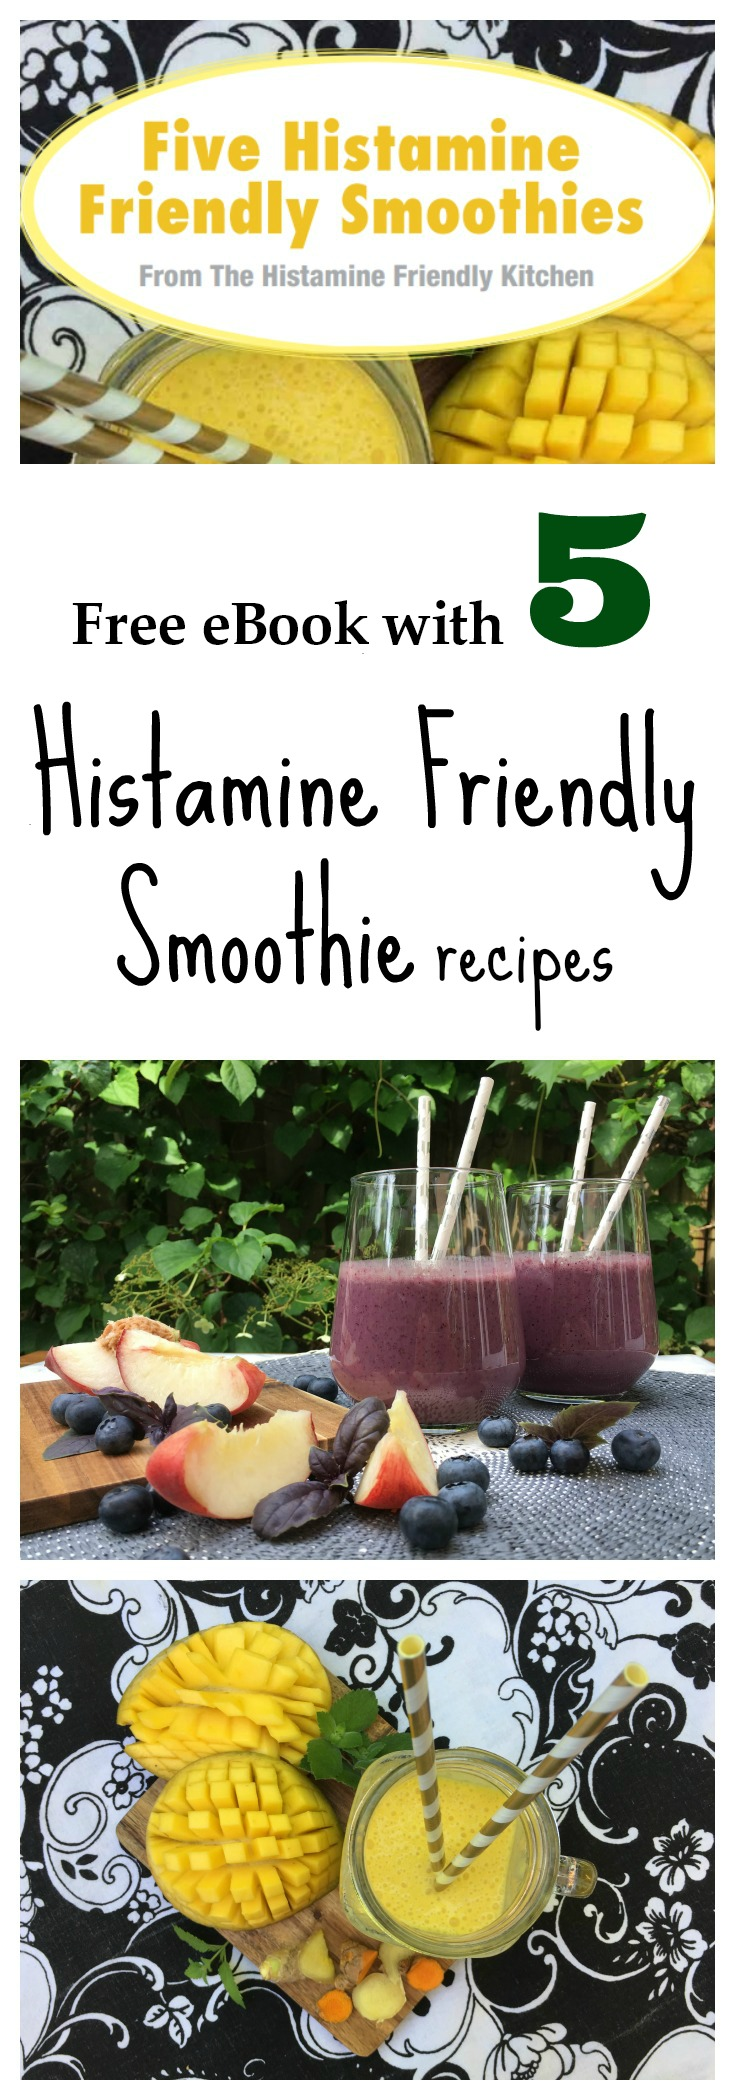 Free eBook - Five Histamine Friendly Smoothies